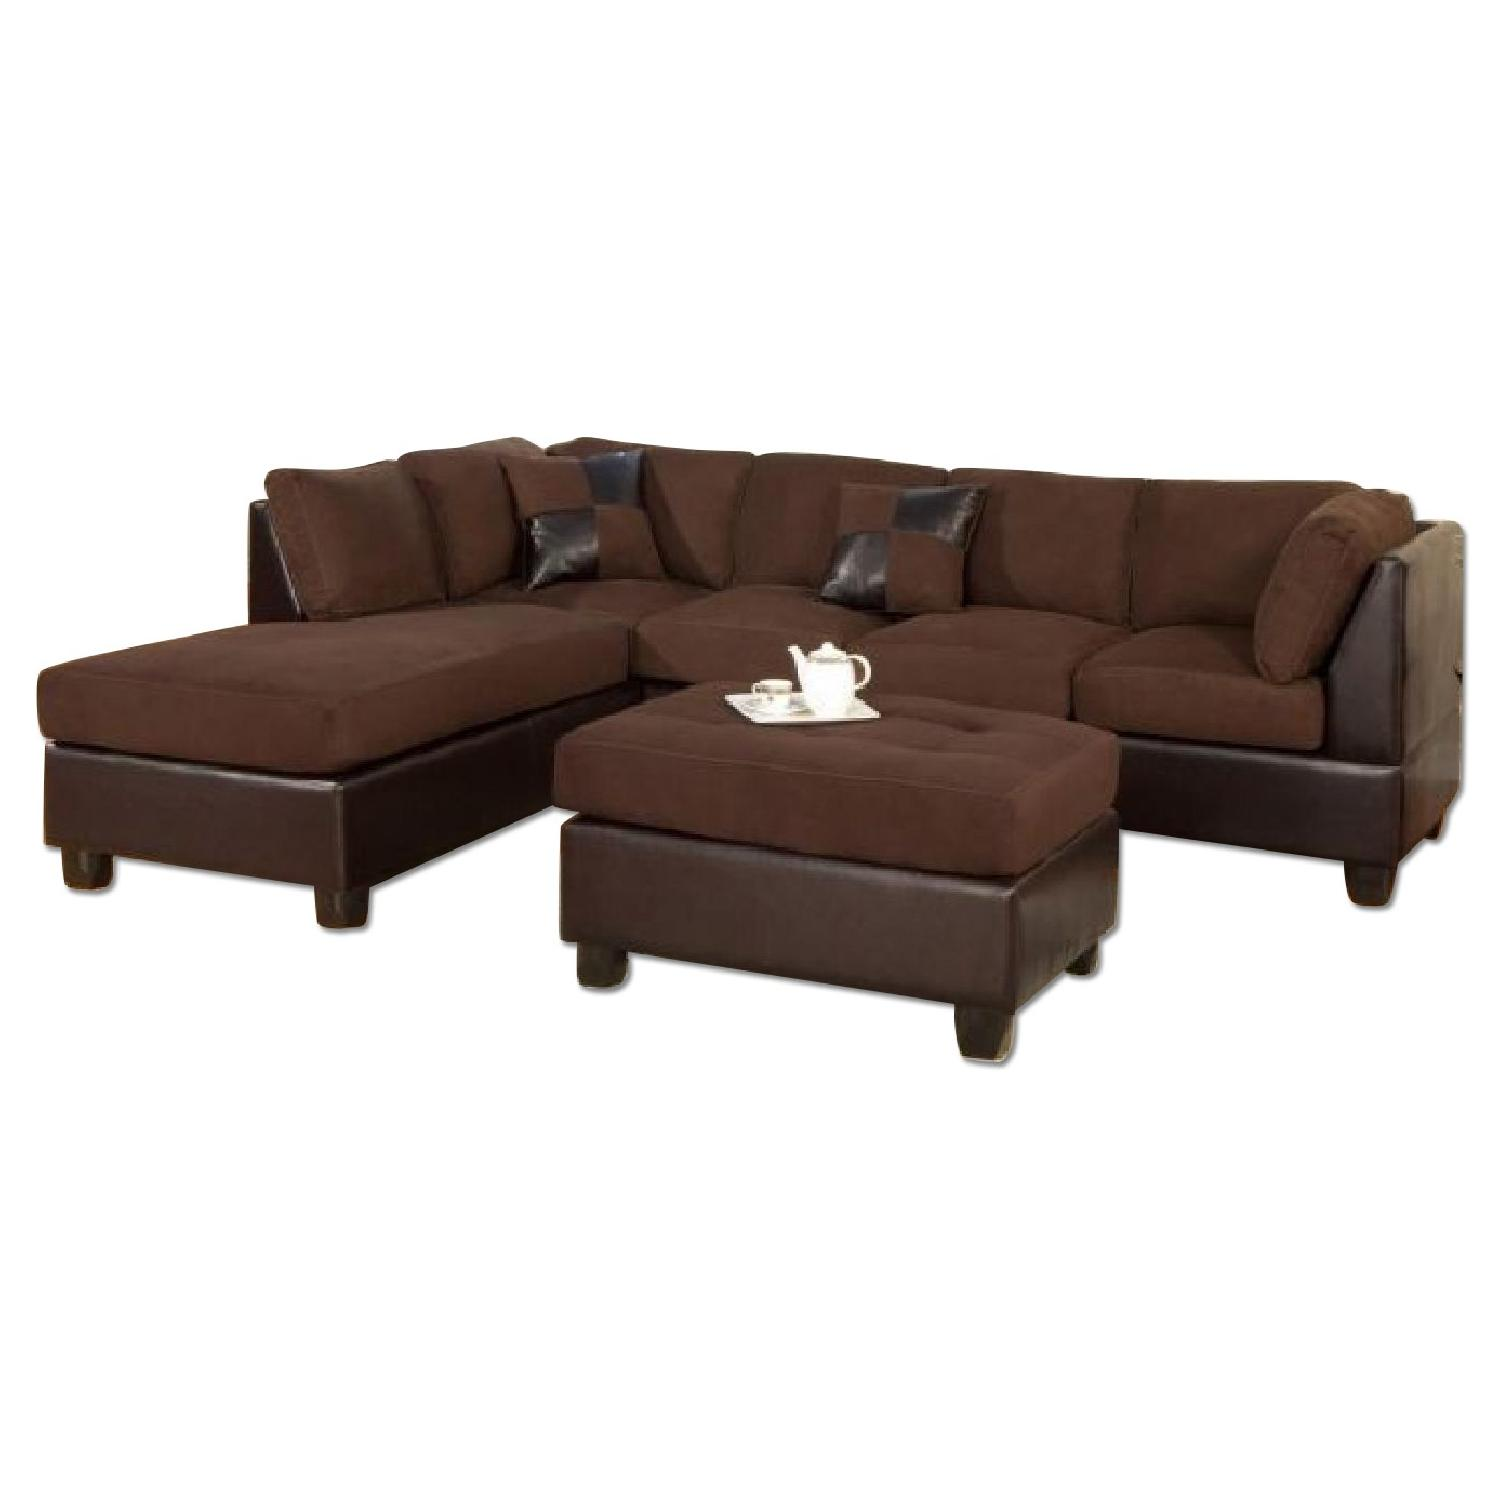 Chocolate Microfiber 3-Piece Reversible Chaise Sectional